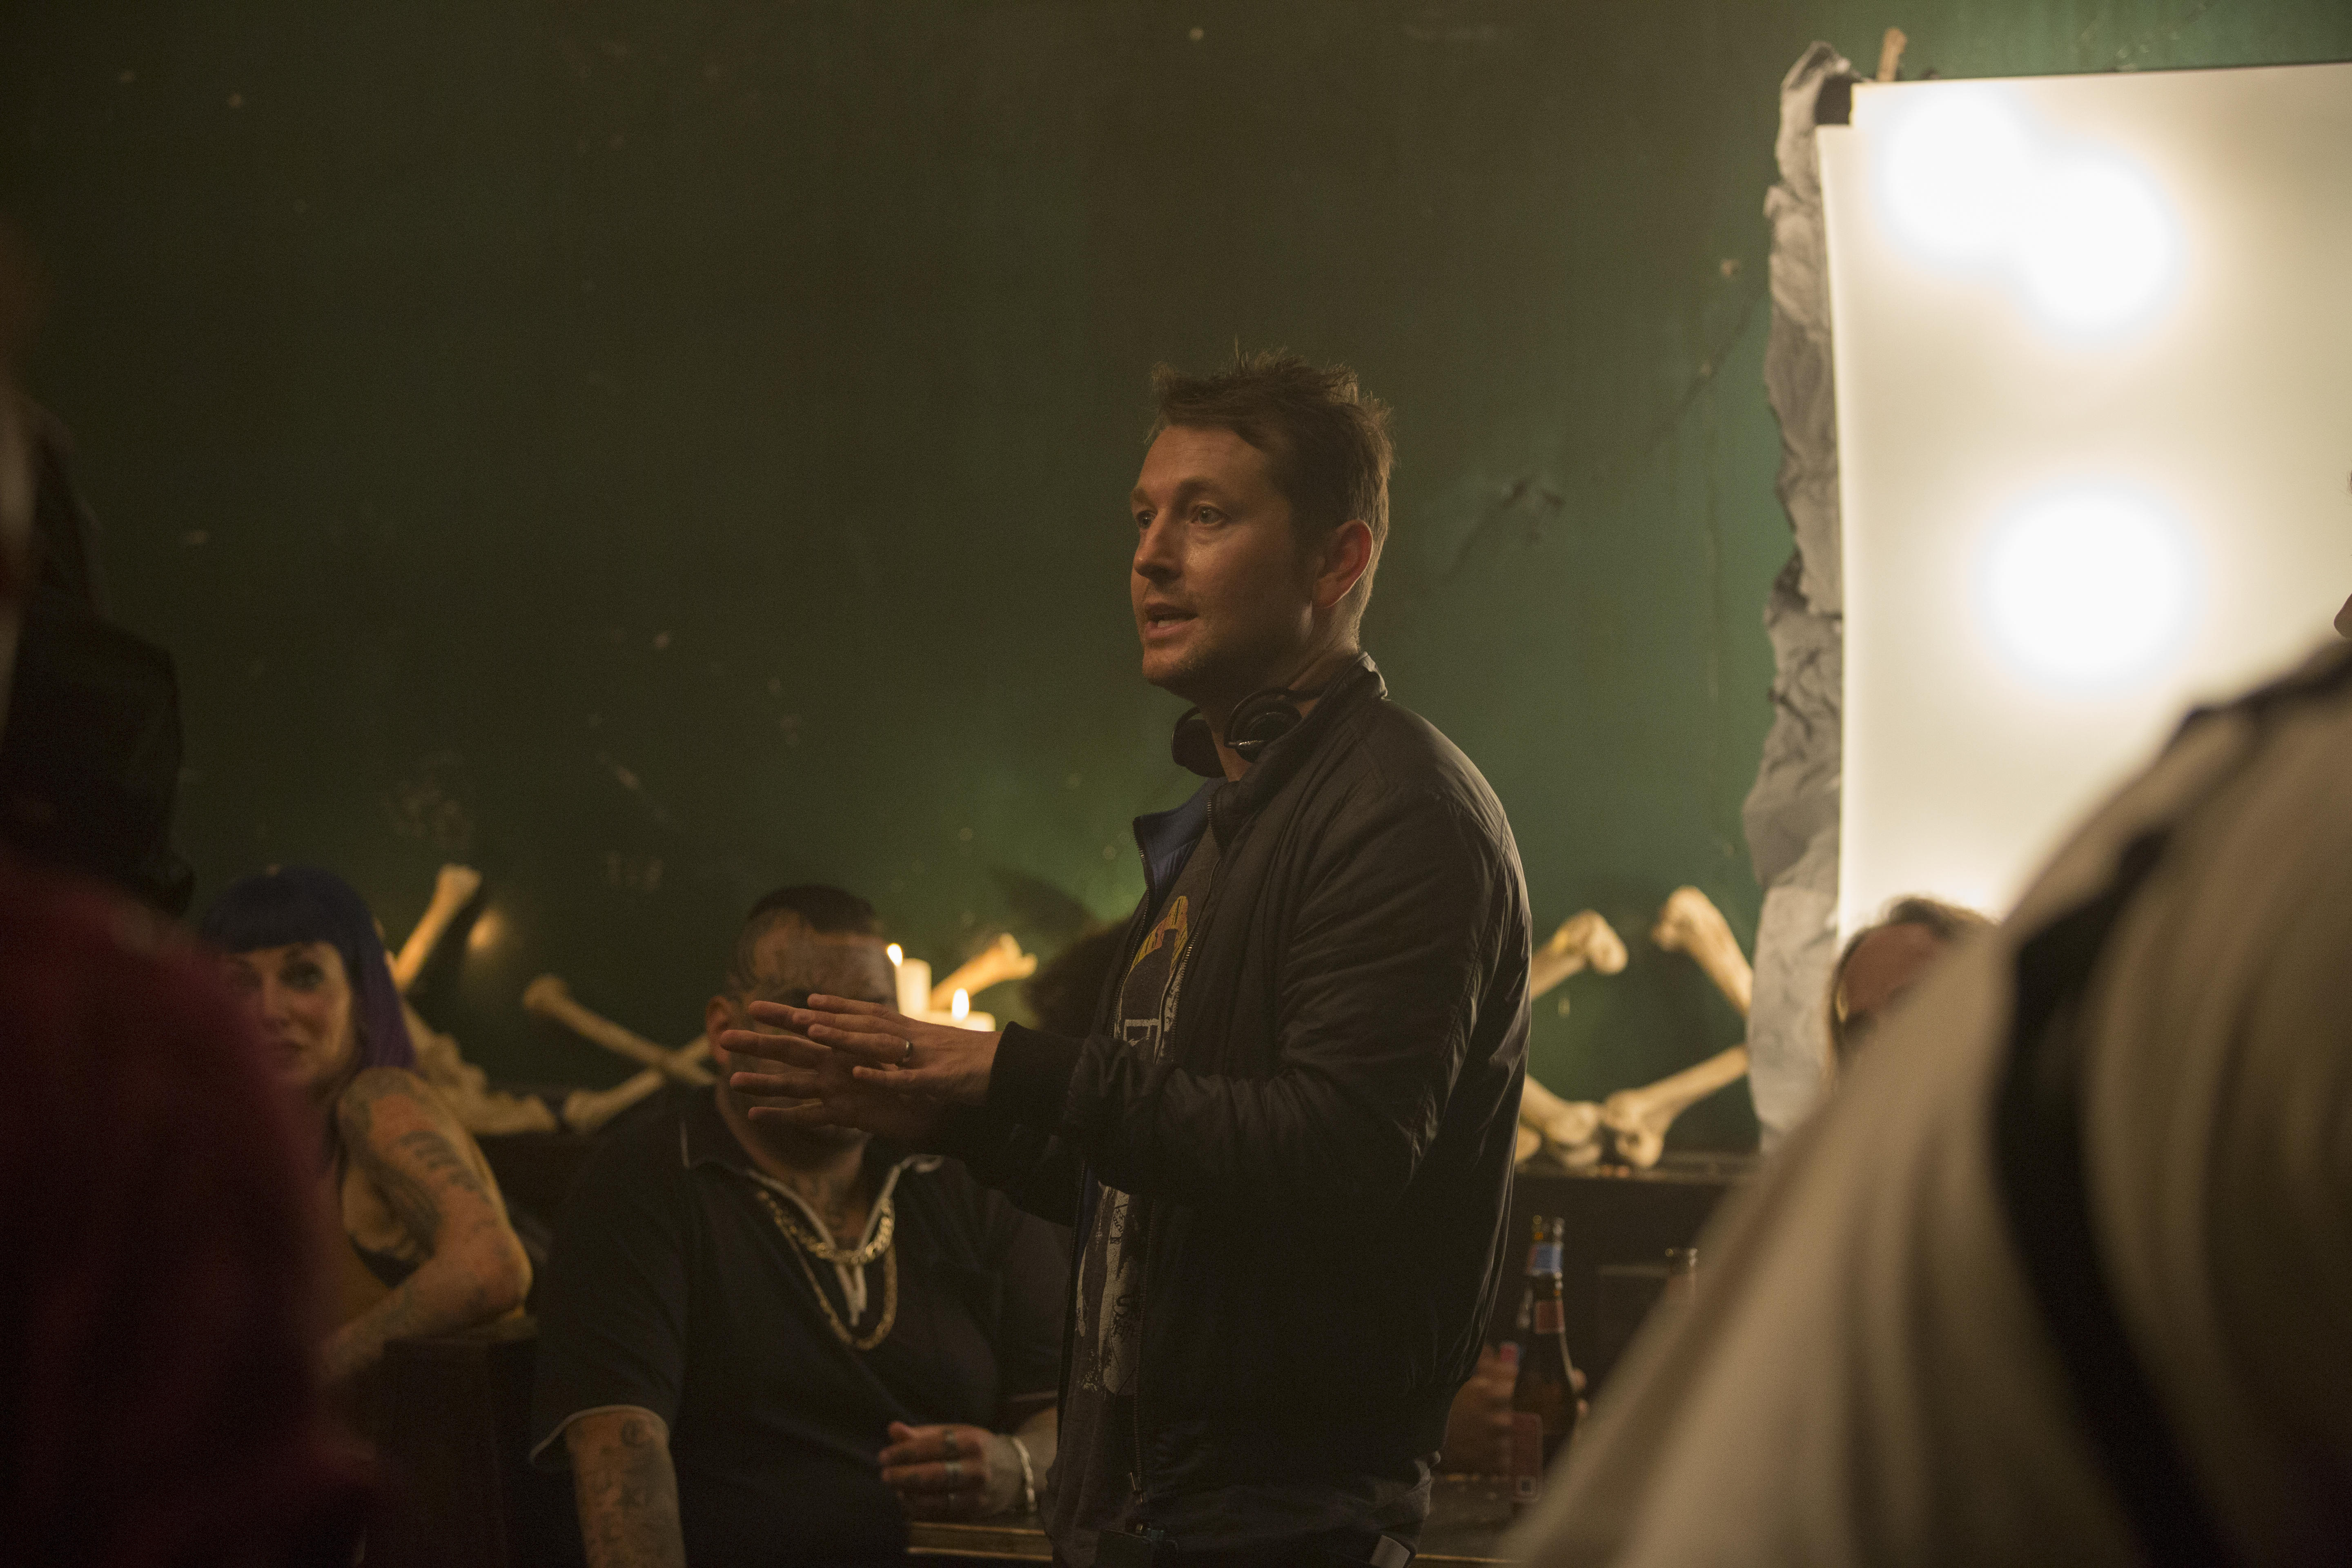 writer-director-leigh-whannell-on-the-set-of-upgrade-courtesy-of-bh-tilt